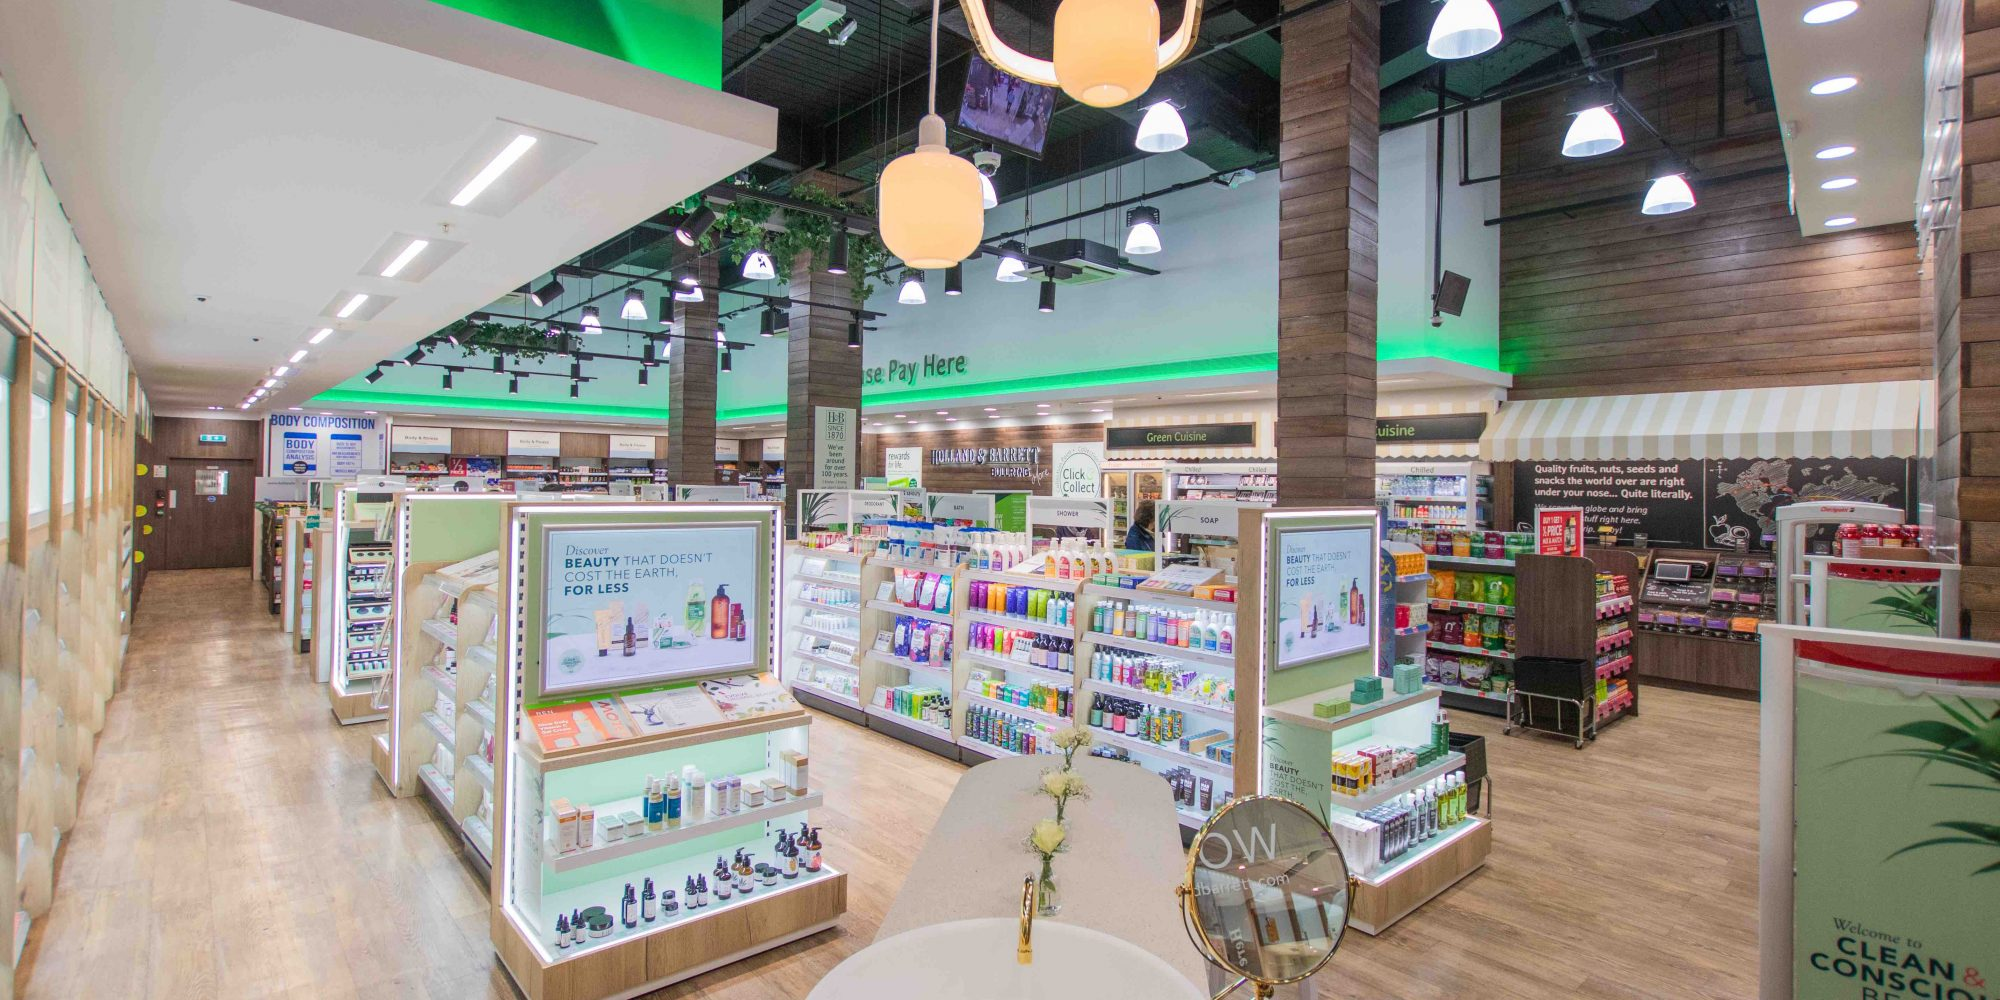 Health And Wellness Chain Holland & Barrett Opens Clean Beauty Store In Birmingham